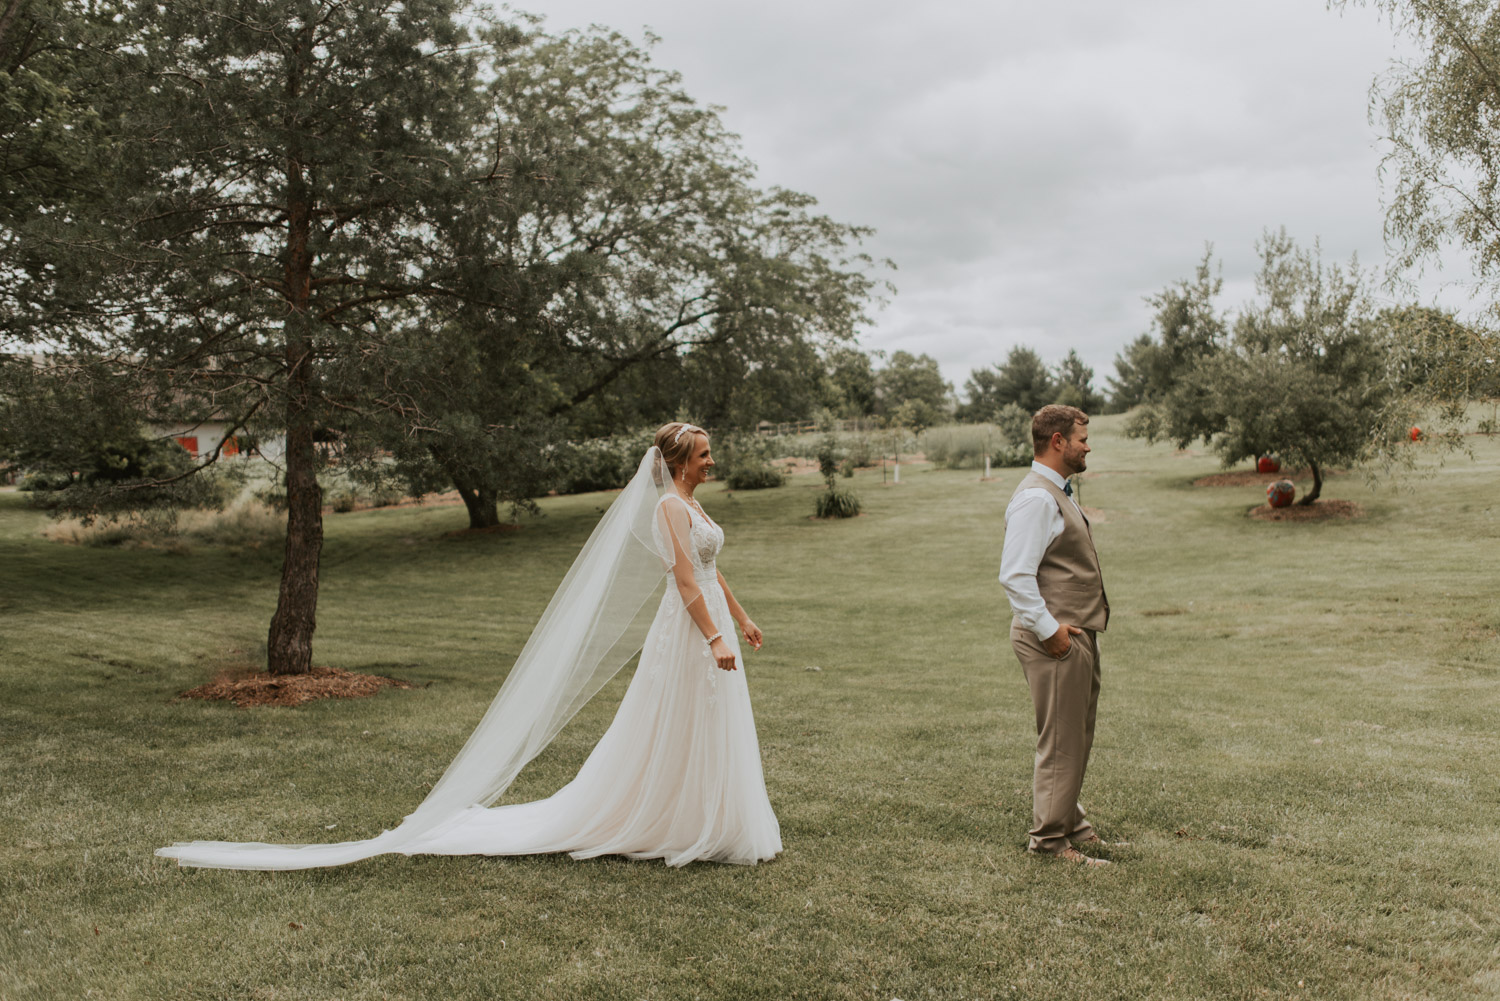 first look moments from wedding in lincoln, nebraska